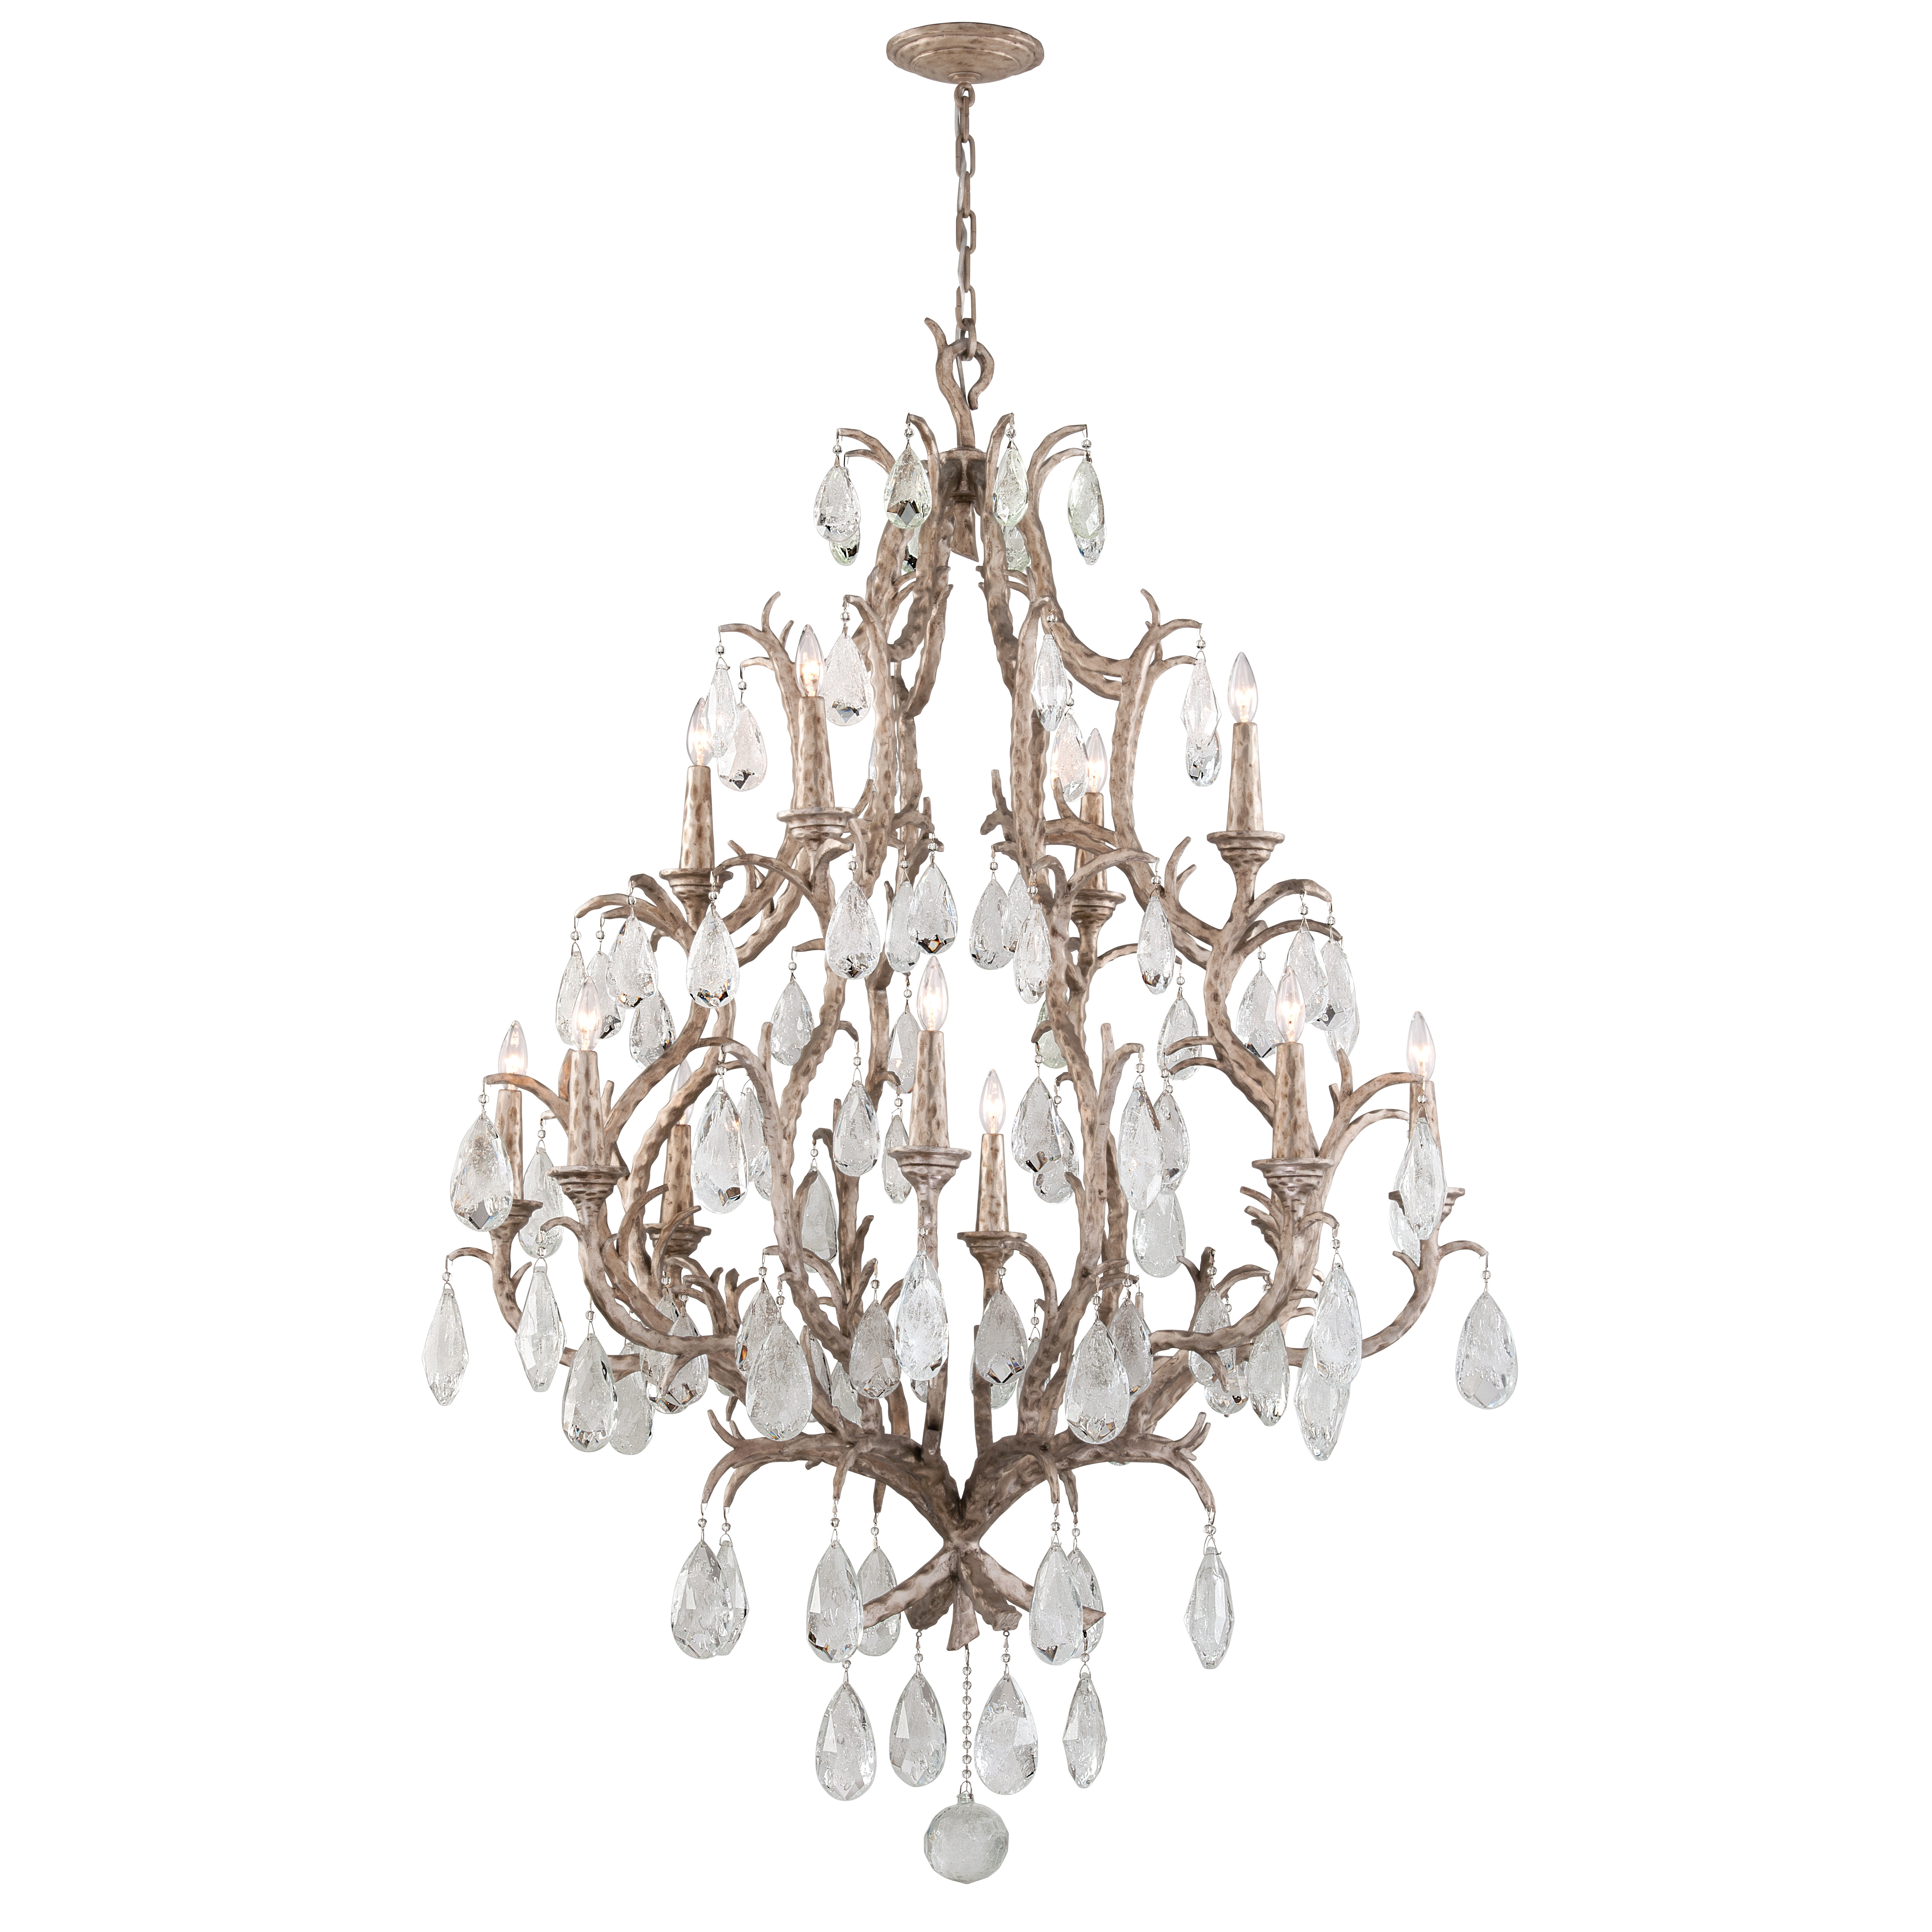 Lighting Have Luxury Lighting Using Crystal Chandelier With Regard To Vienna Crystal Chandeliers (Image 11 of 25)